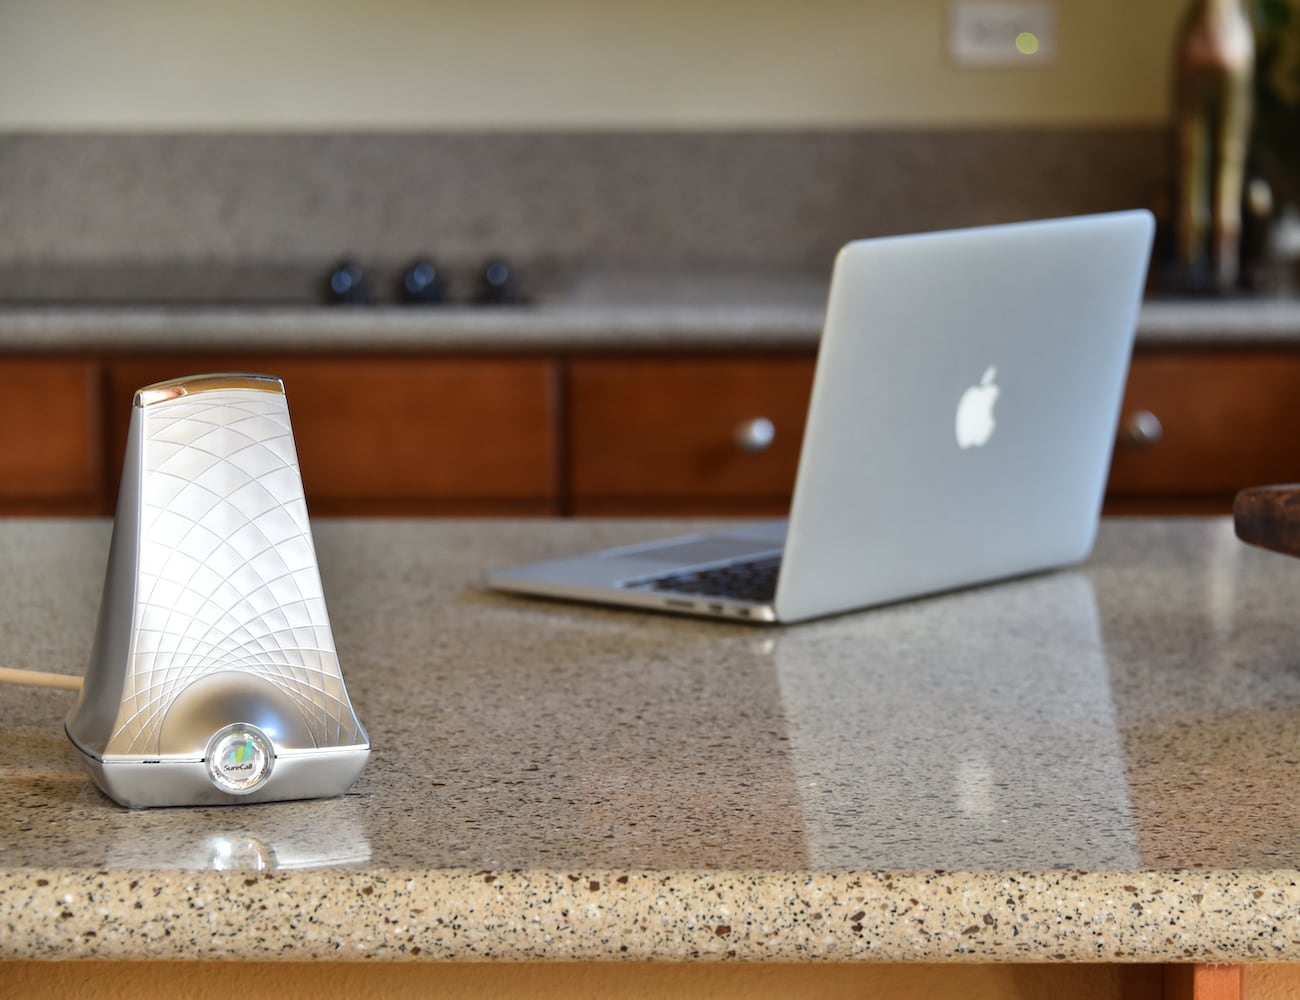 SureCall Flare Cell Phone Signal Booster improves cell signal in your space